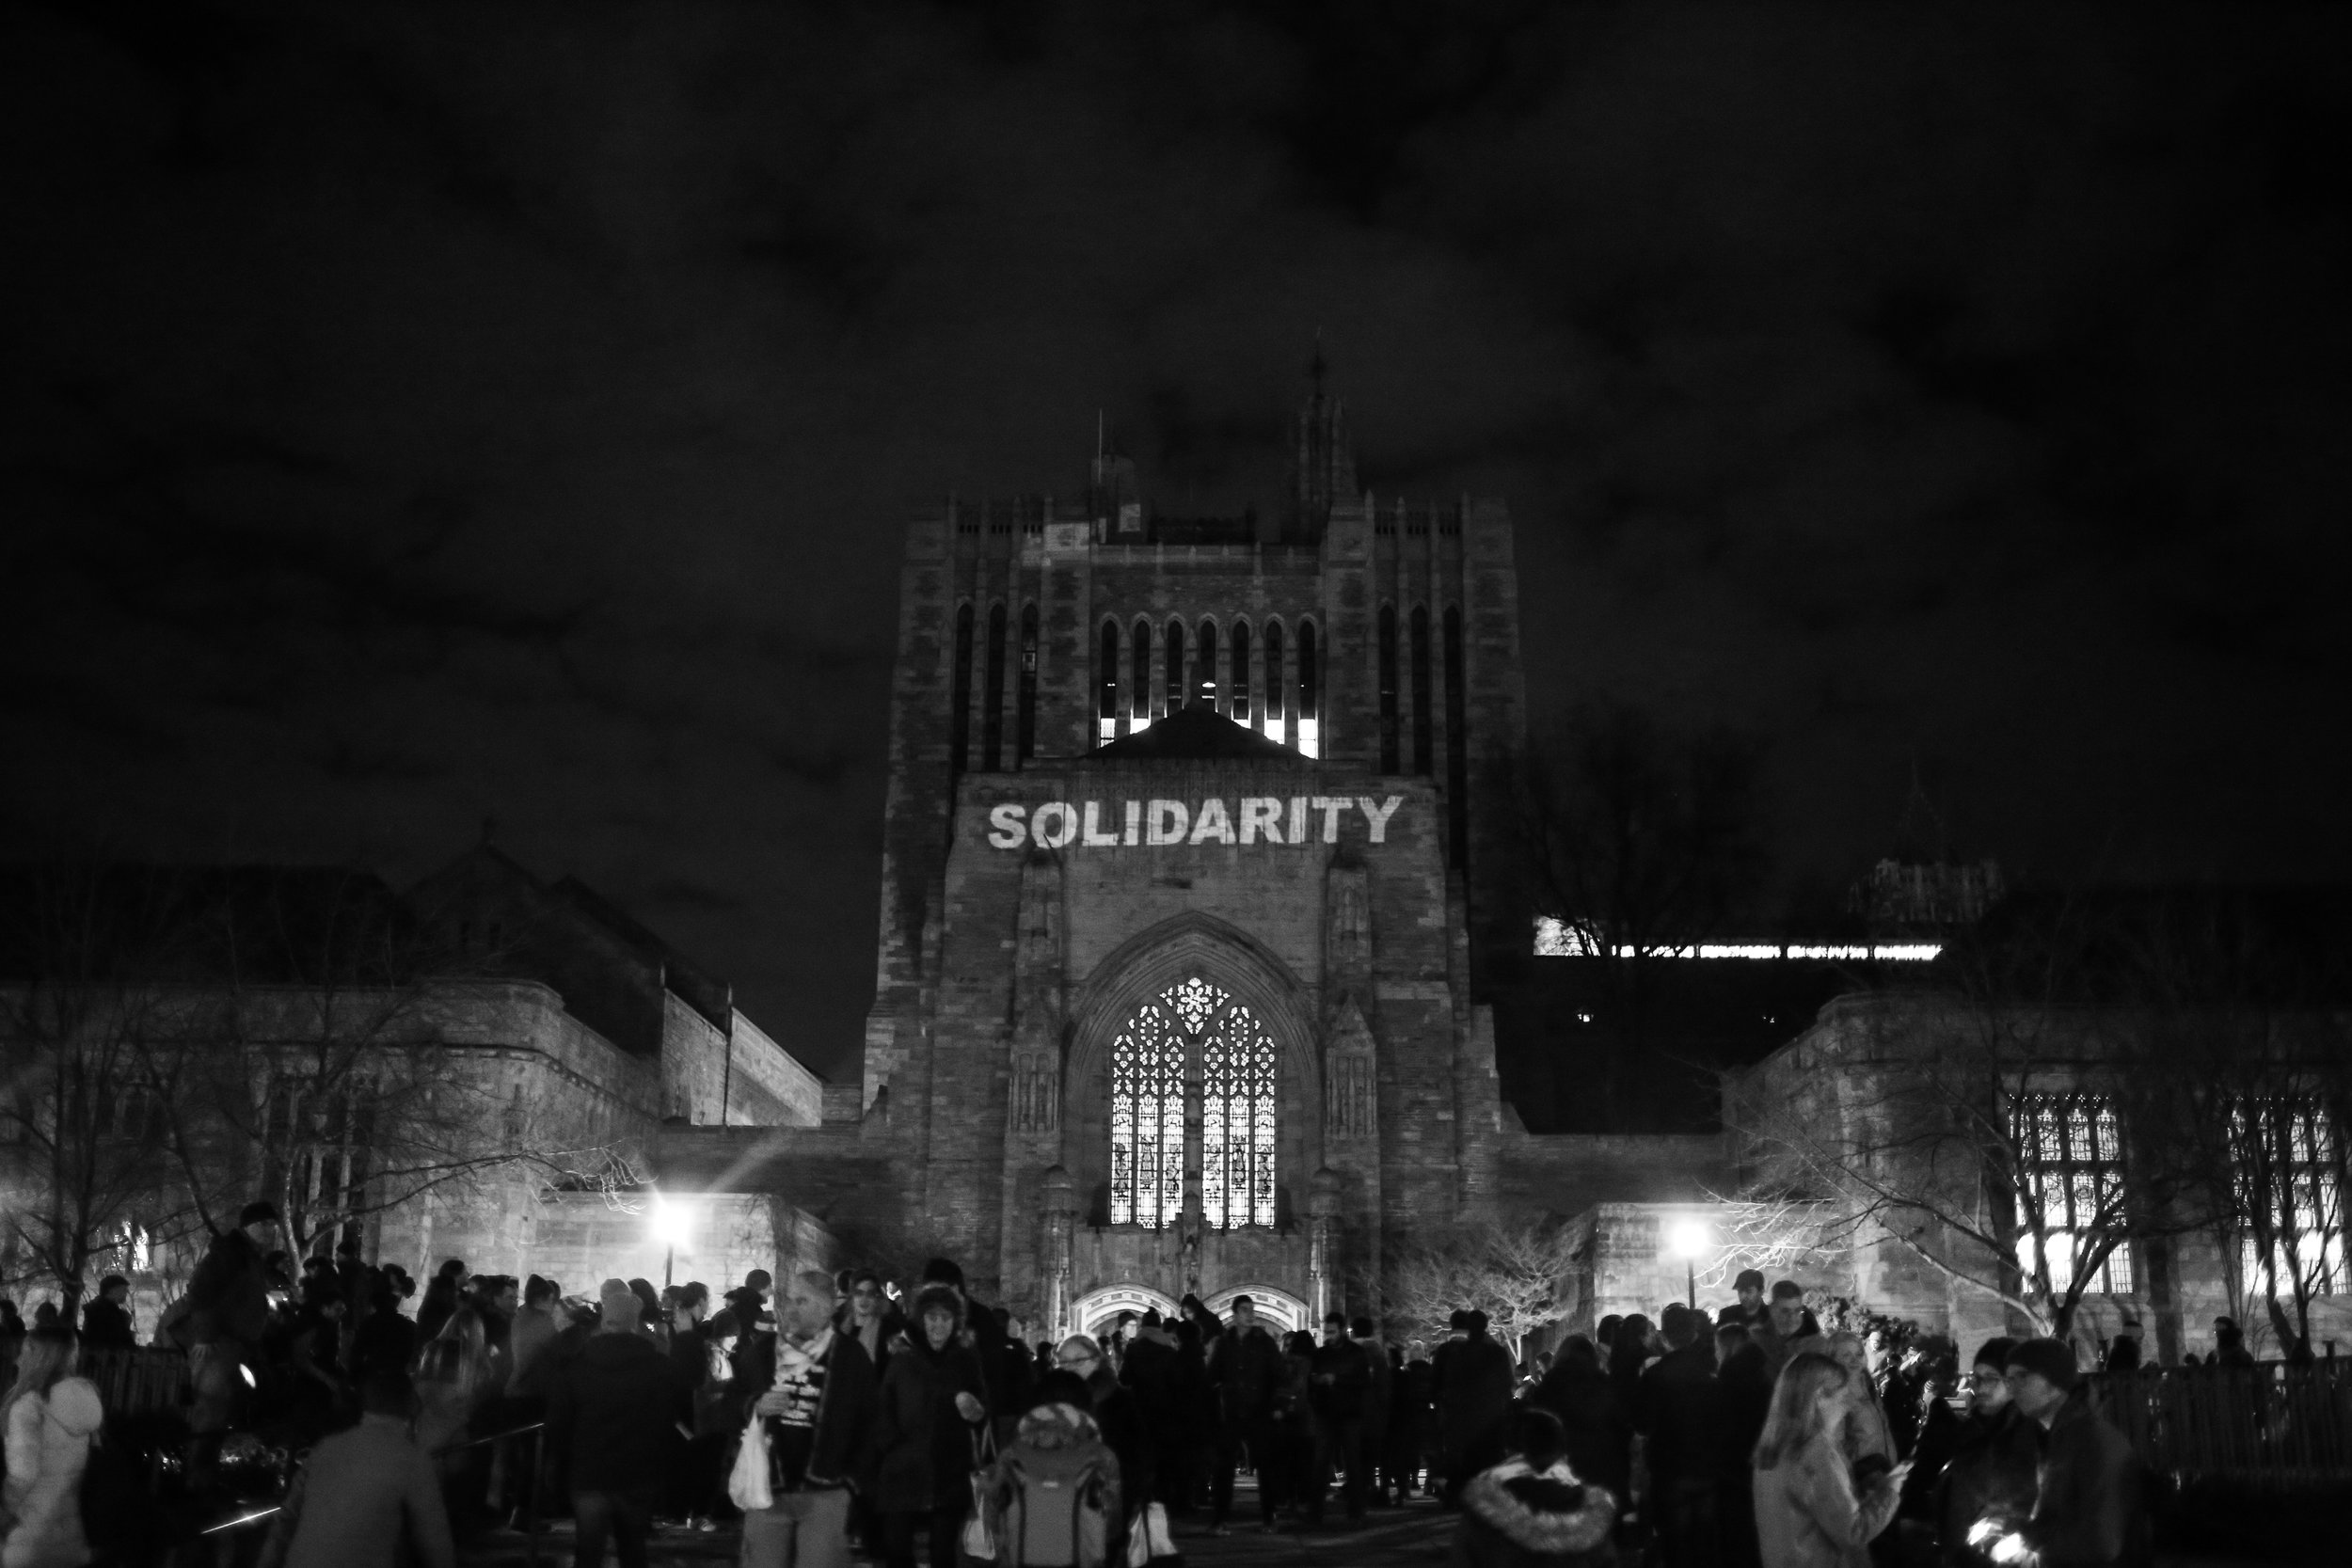 "New Haven, Connecticut - January 29th, 2017: A vigil is held for immigrants and refugees in front of Yale's Sterling Memorial Library. A projection onto the library reads ""Solidarity""."